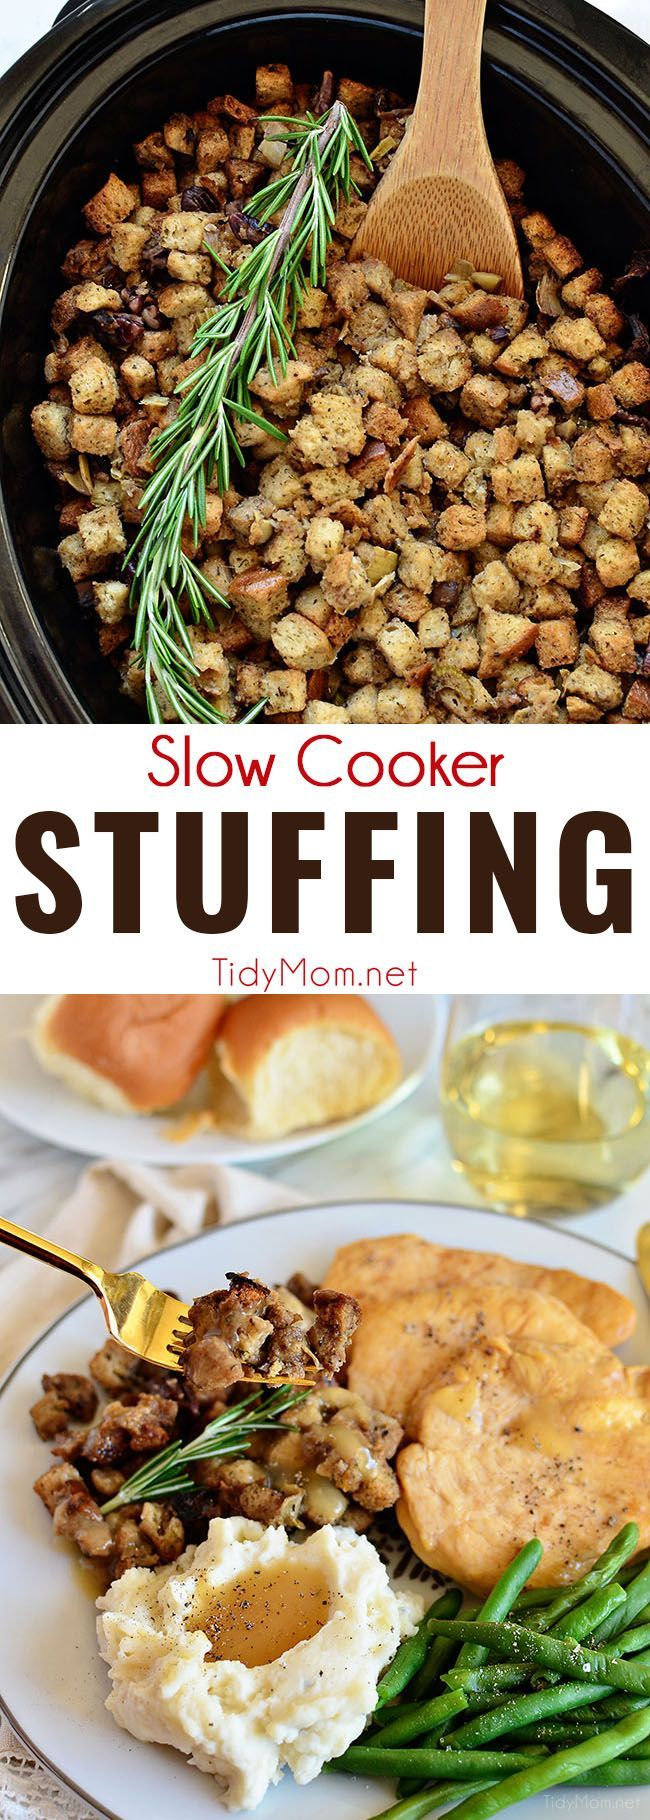 Free up the oven and stove this holiday season with Slow Cooker Stuffing made with artichokes, mushrooms and toasted pecans. Easy, flavorful and perfect for any holiday meal. Get the recipe at TidyMom.net